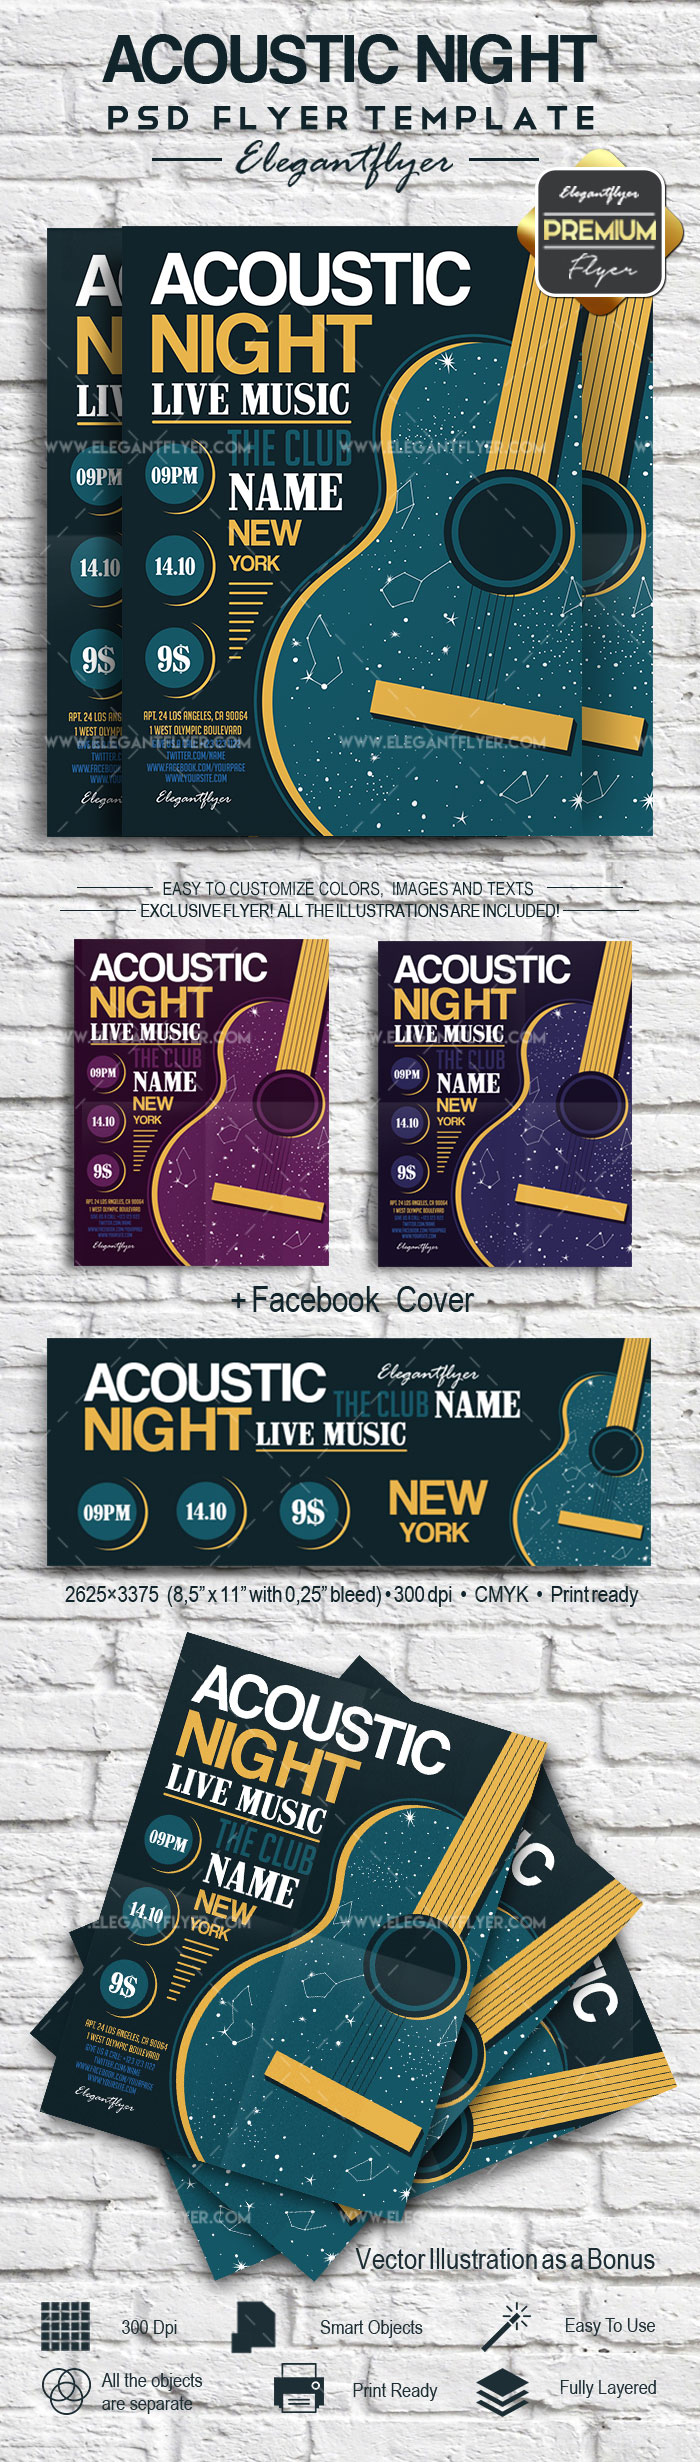 Music Flyer Acoustic